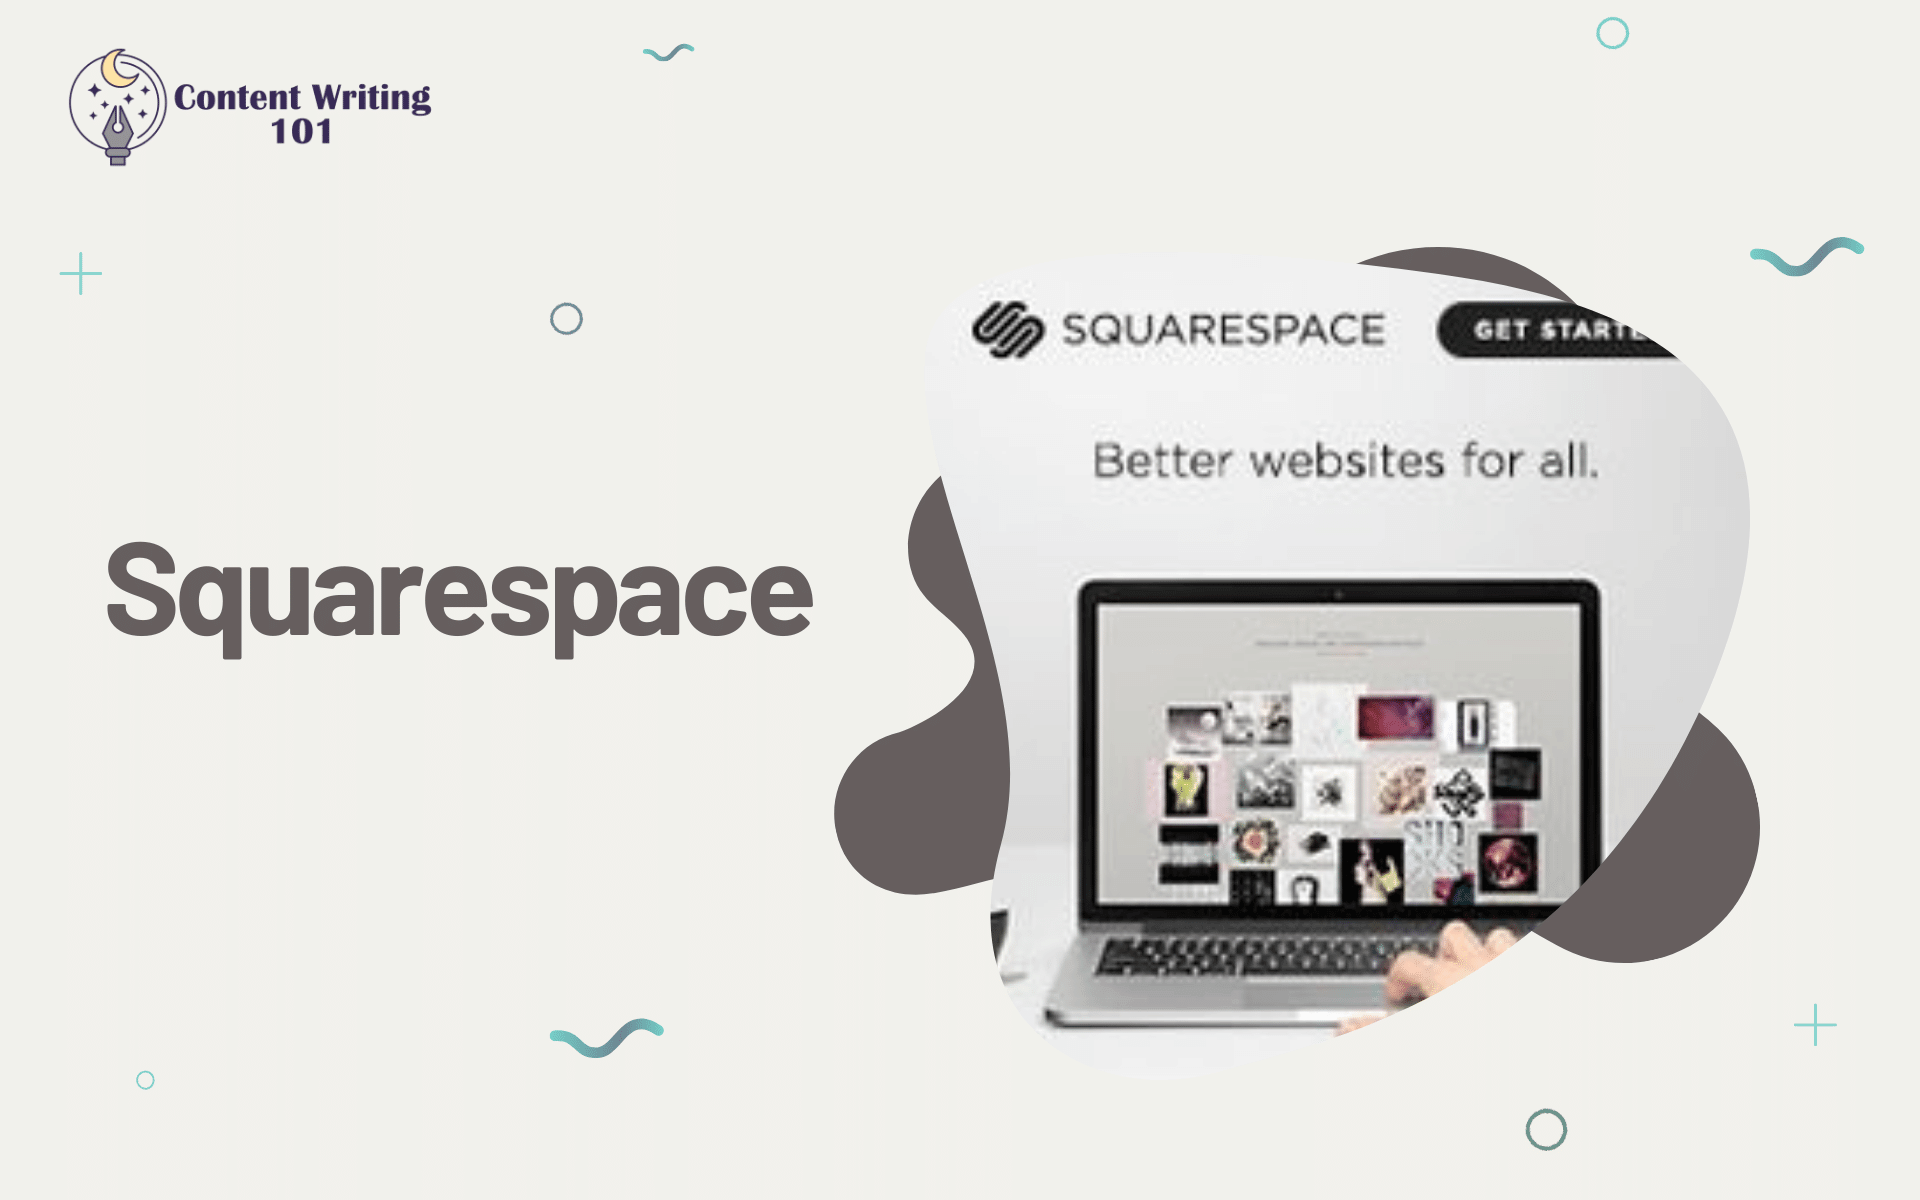 Squarespace Content Writing 101